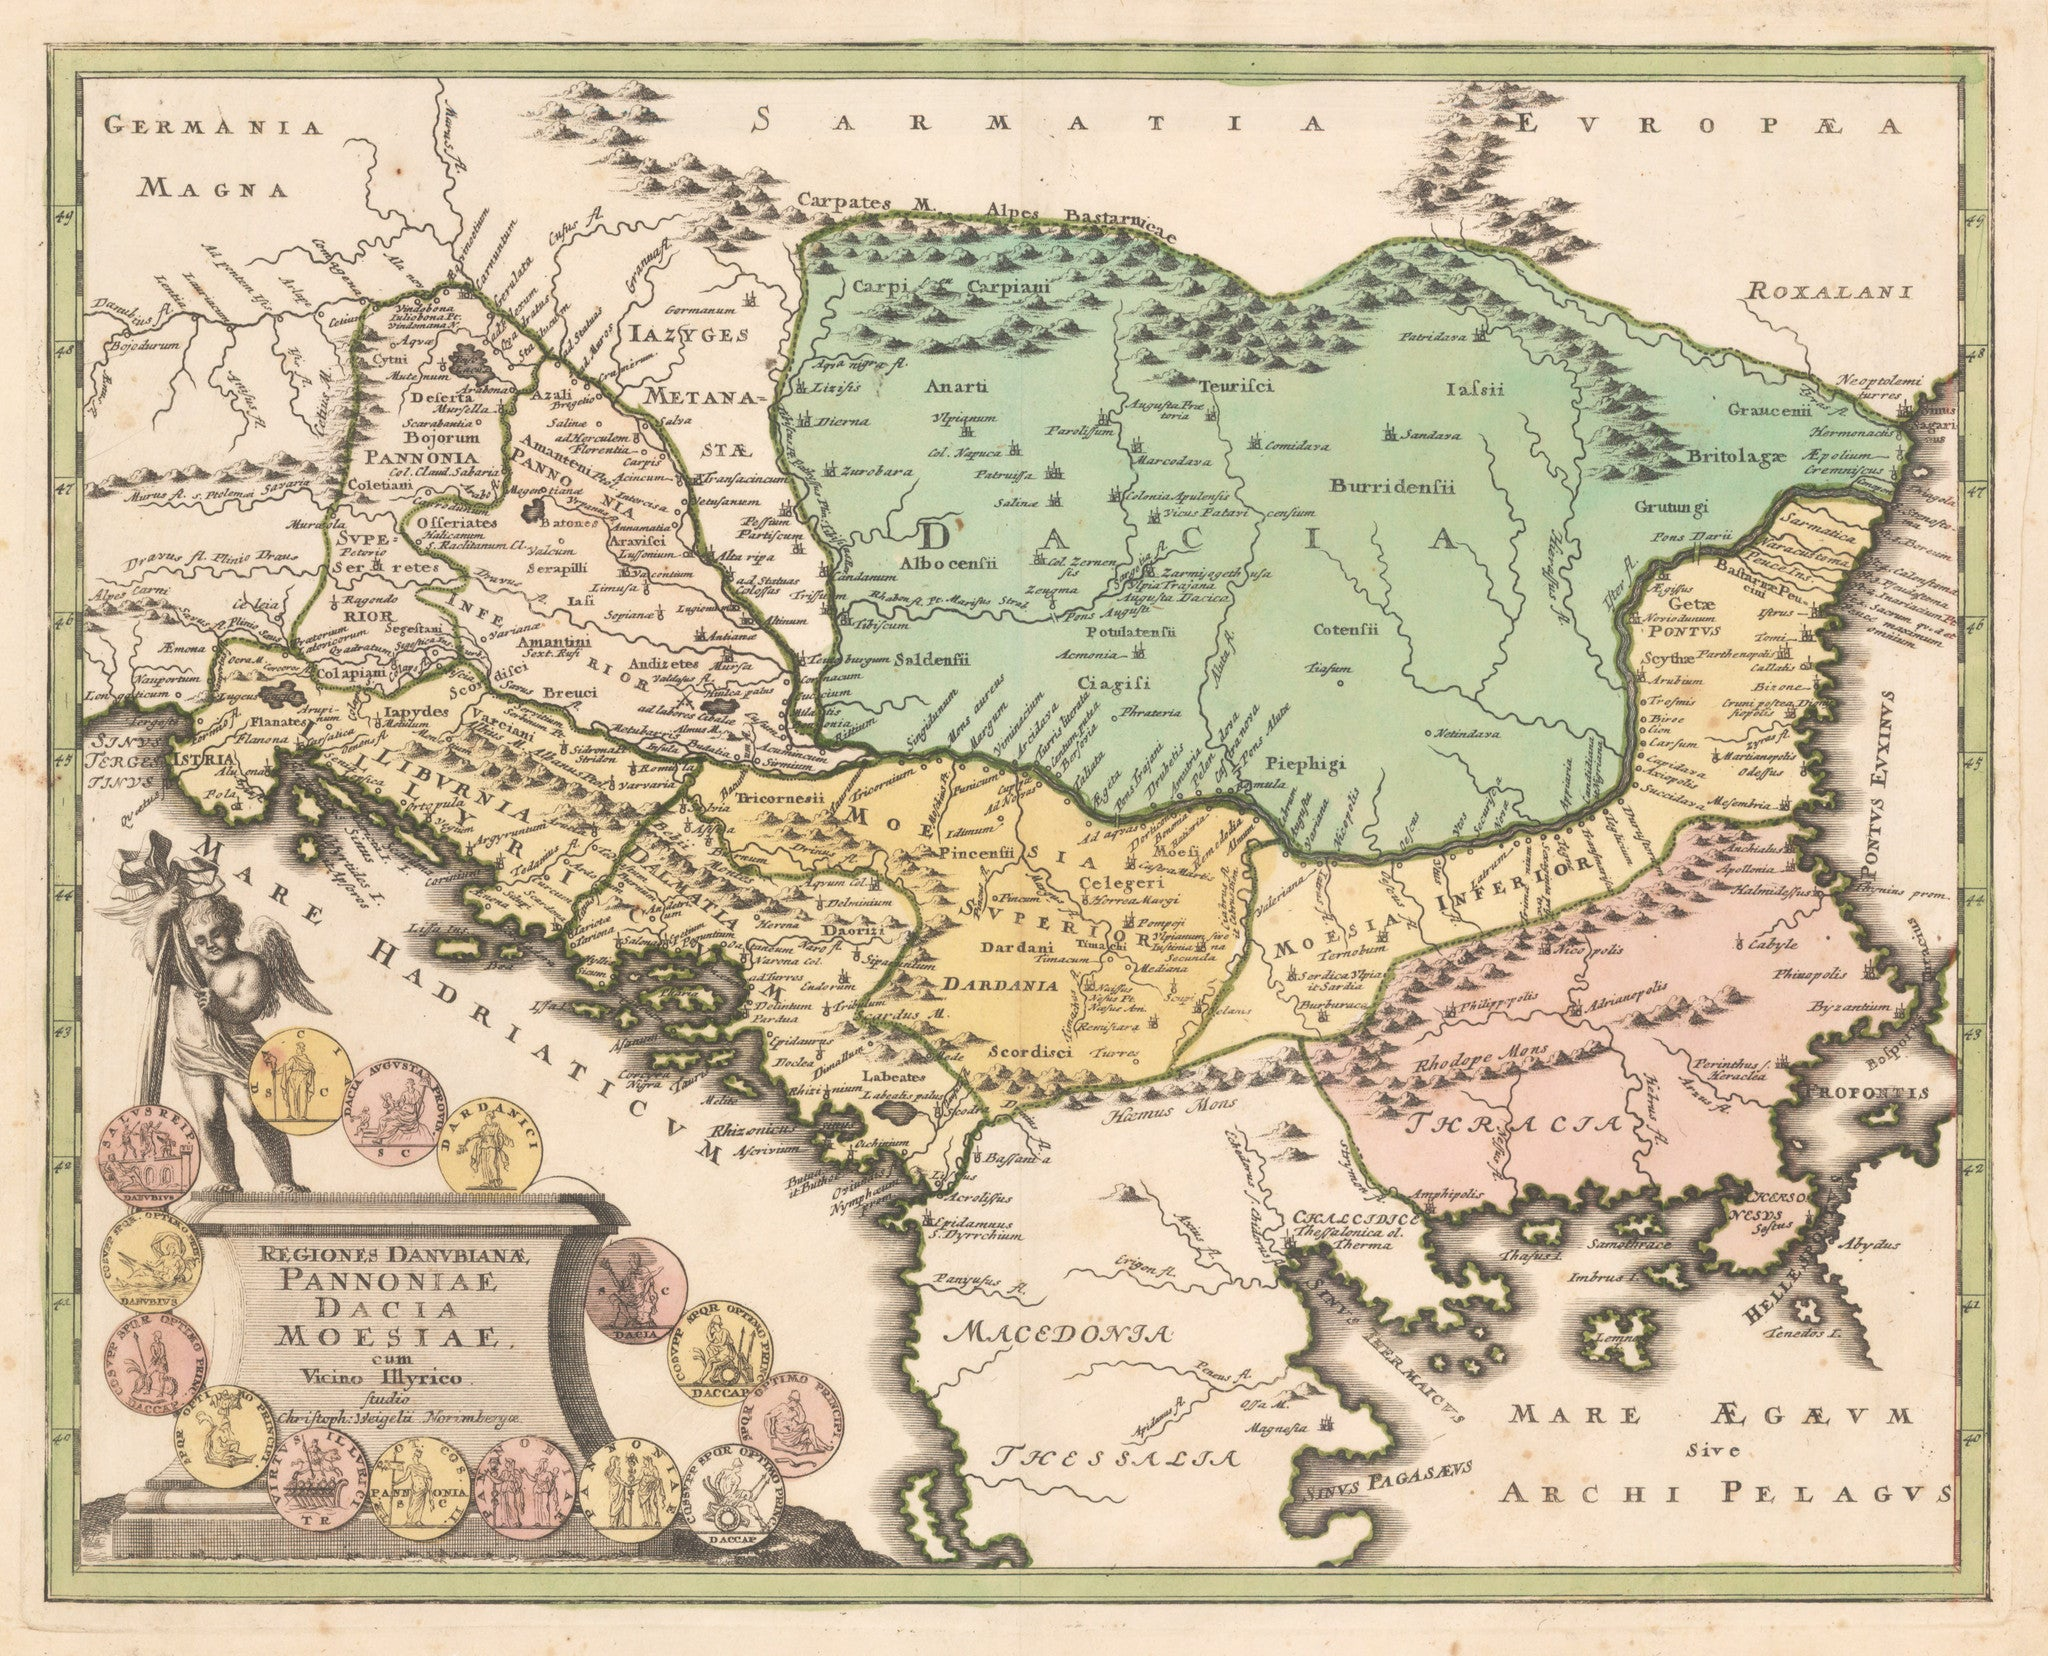 Regiones Danubianae, Pannoniae, Daciae, Moesiae cum Vicino By: Johann Christoph Weigel Date: 1720 (Published) Nuremberg Size: 12 x 15.25 inches - Antique, Vintage, Balkans, Dacia, Macedonia